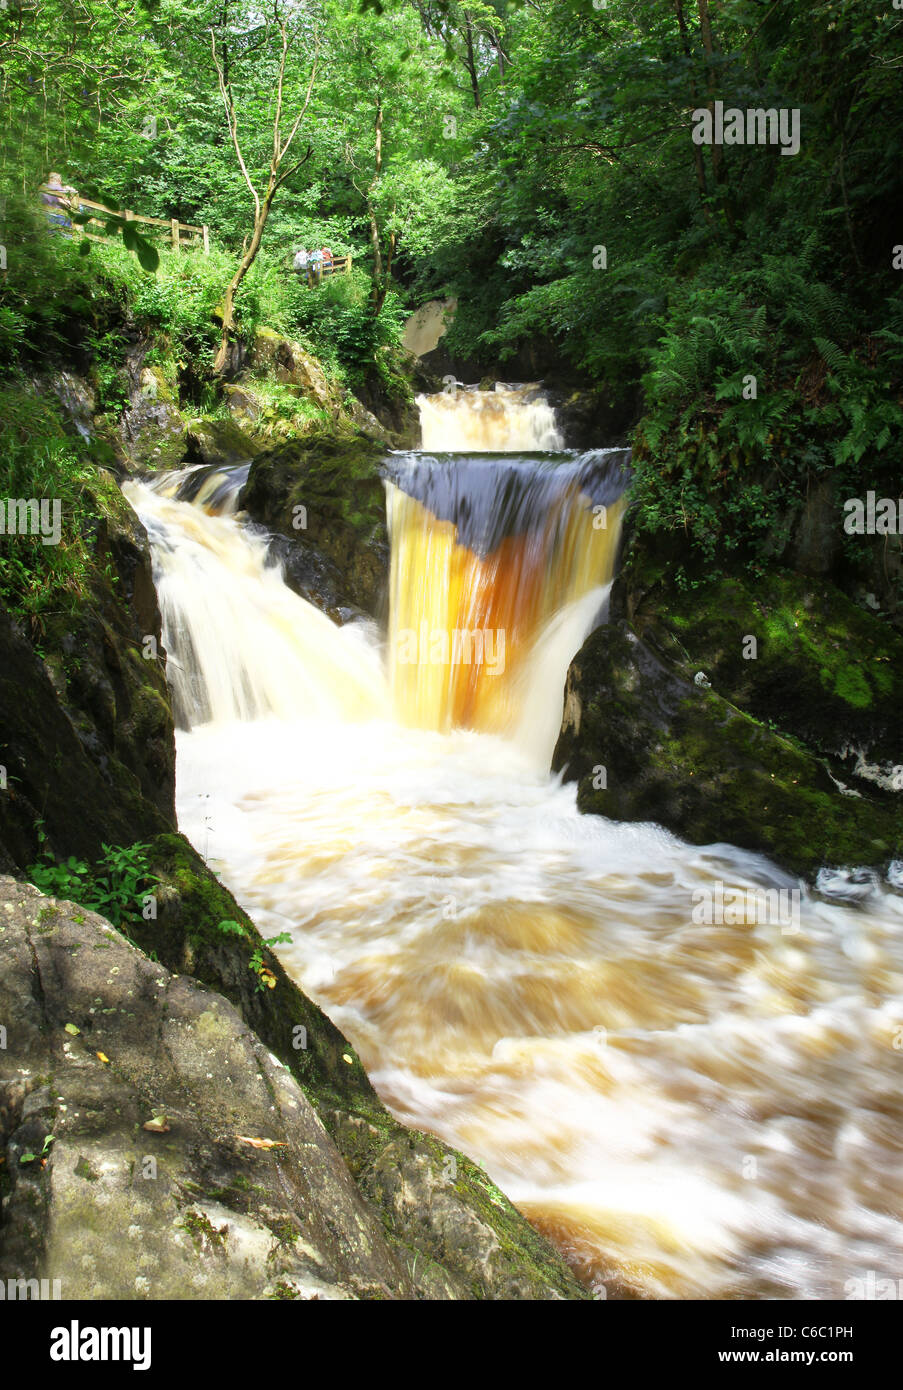 The Pecca Twin Falls on the Ingleton Waterfalls Trail, Ingleton, North Yorkshire, Yorkshire Dales National Park - Stock Image